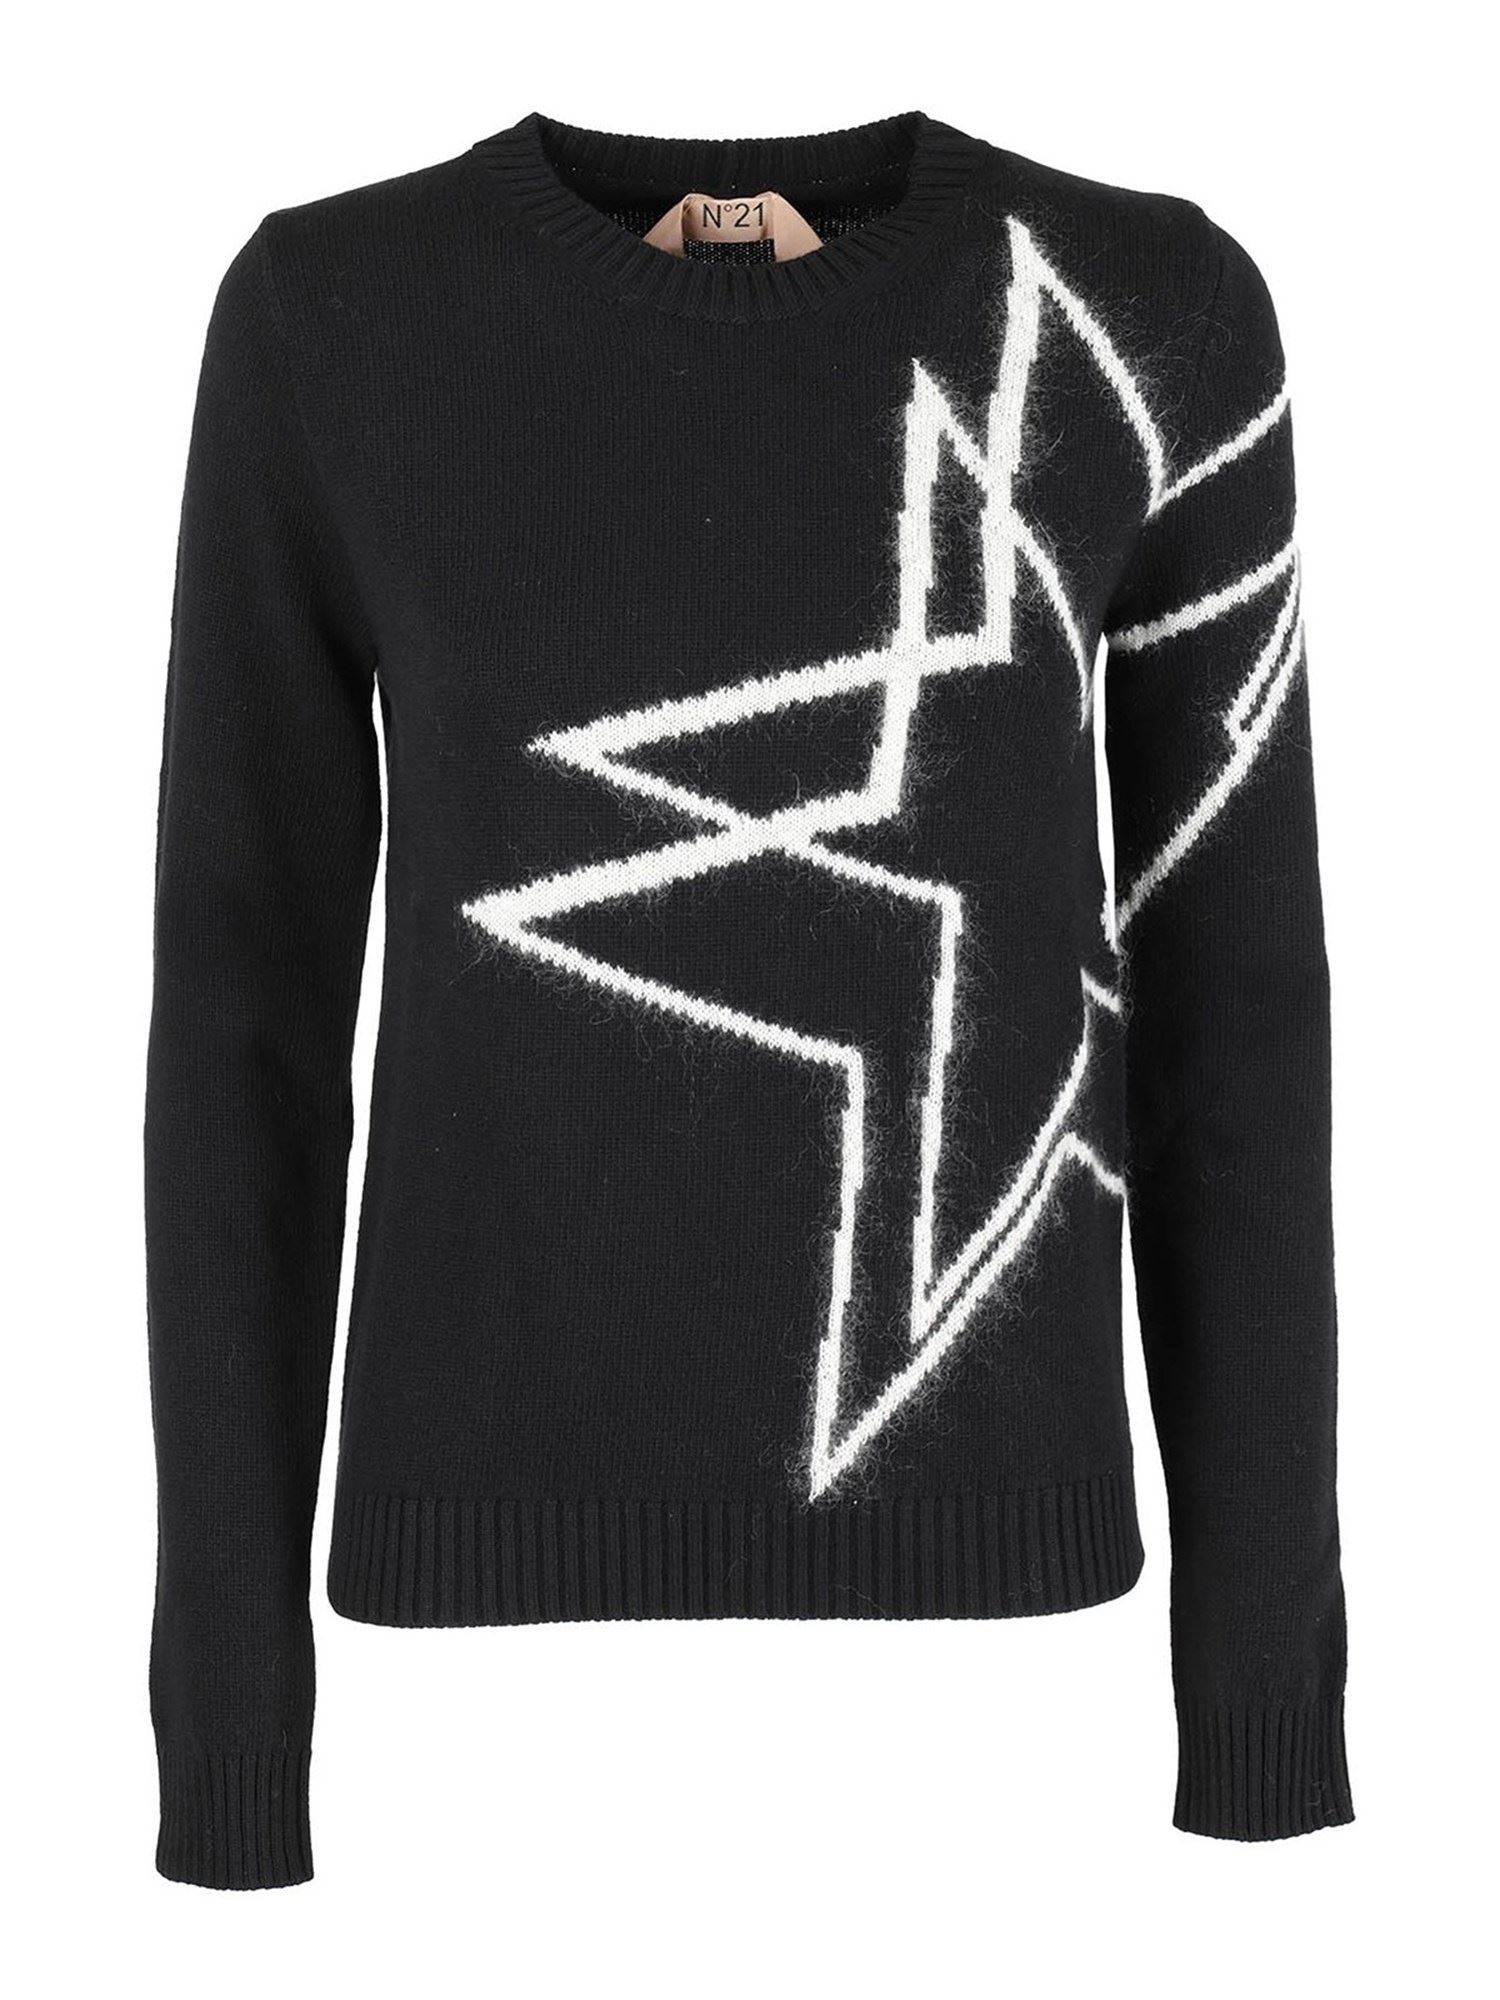 N°21 STAR LOGO CREWNECK IN BLACK